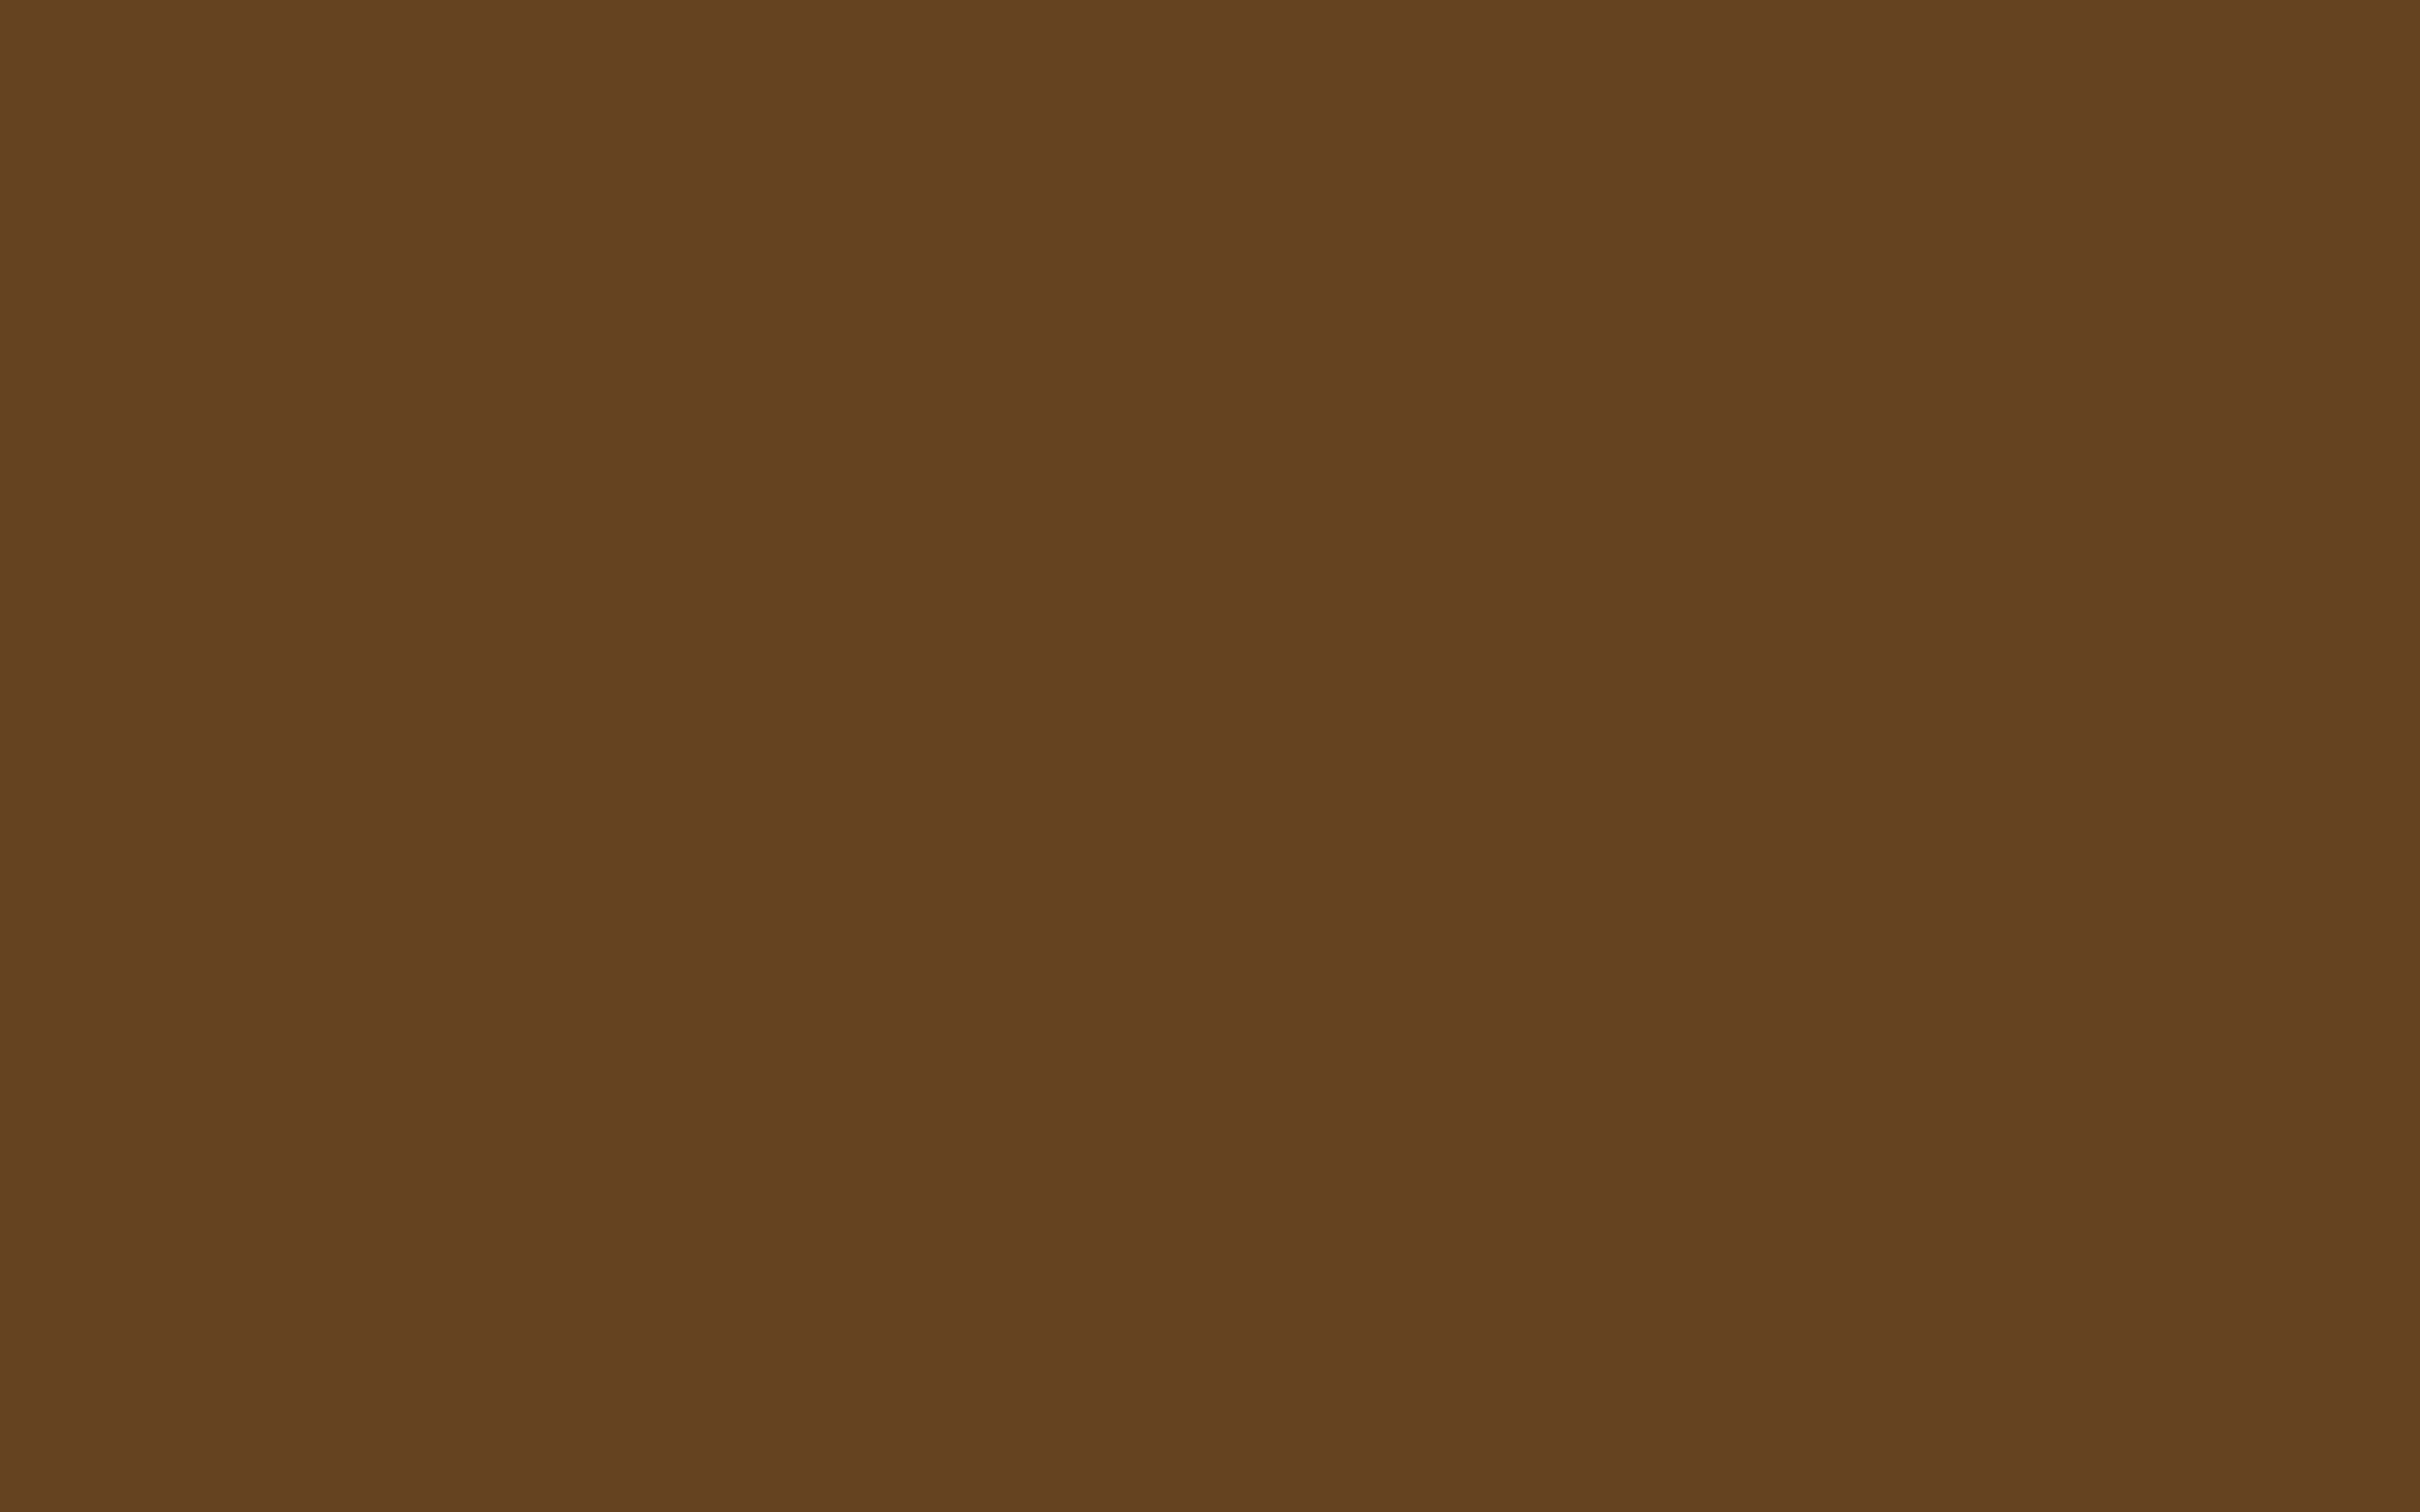 2880x1800 Otter Brown Solid Color Background